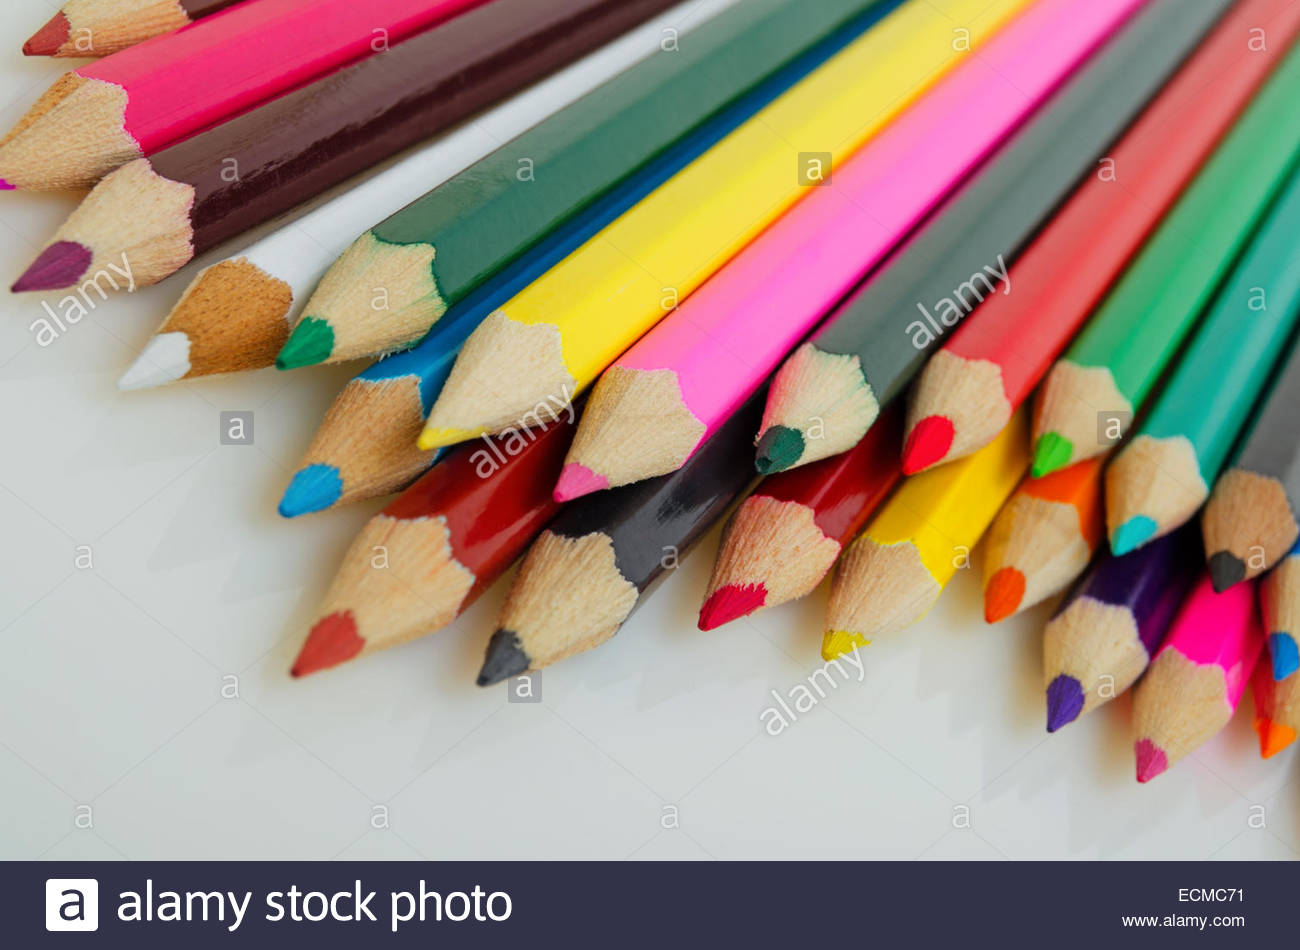 Colored pencils on a light background closeup. - Stock Image